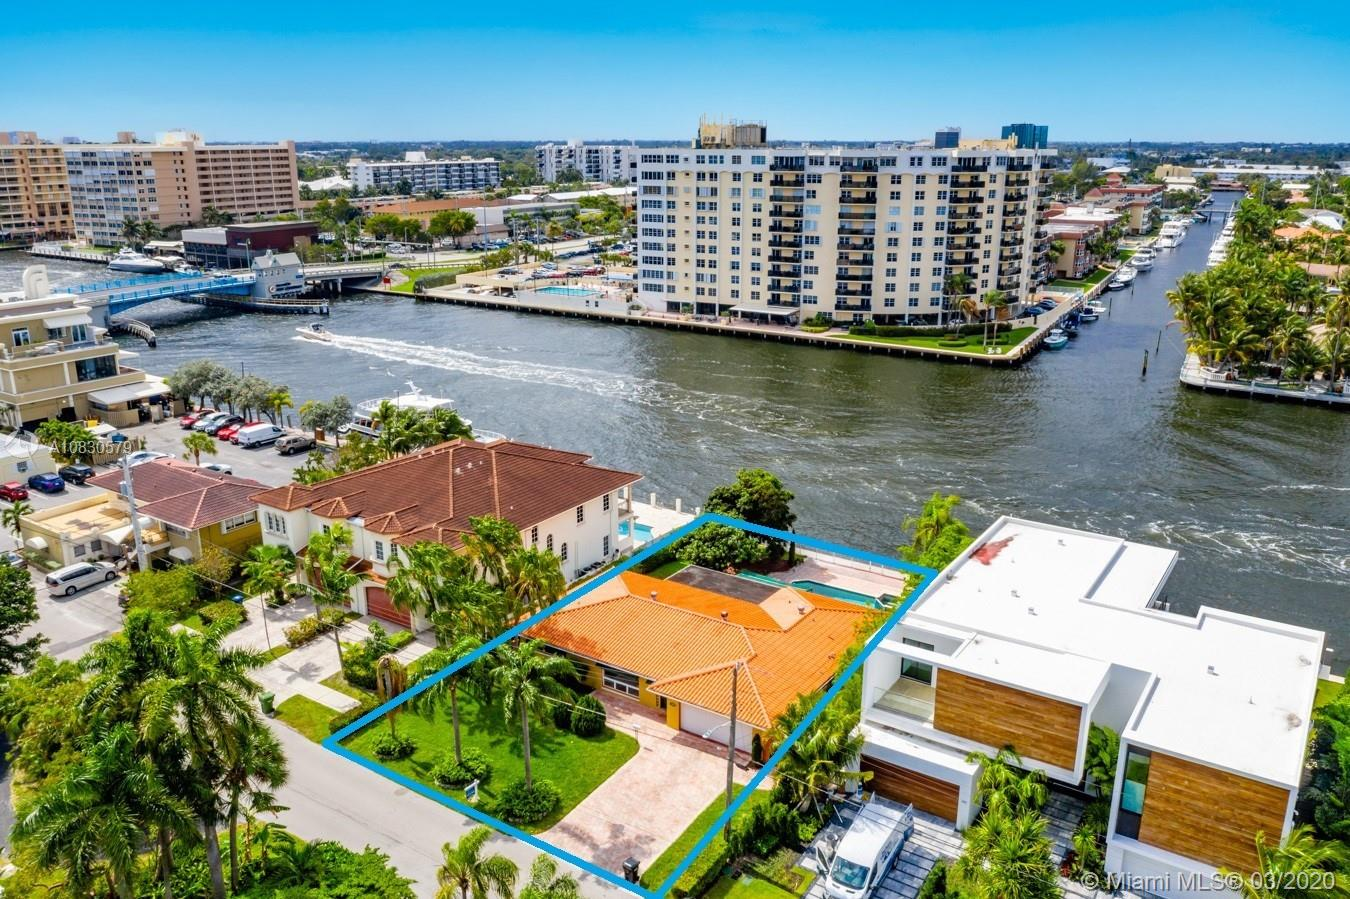 "PRICED TO SELL FAST! | DIRECT INTRACOASTAL HOME IN THE SILVER SHORES SECTION PART OF TOWN IN LAUDERDALE-BY-THE-SEA | 4431 WEST TRADEWINDS AVE.| 2,592 SQ.FT. | 3 BEDROOM / 2 BATHROOM HOME | LARGE POOL & HOT TUB | ONE OF THE LAST HOMES REMAINING ON THE STREET TO BE TO BE REMODELED OR REDEVELOPED | RARELY AVAILABLE LOT IN A ""NO WAKE"" ZONE, MAKING IT POSSIBLE TO KEEP A BOAT UP TO APPROX. 65' FEET DIRECTLY BEHIND YOUR HOME IN A PROTECTED WAKE ZONE 